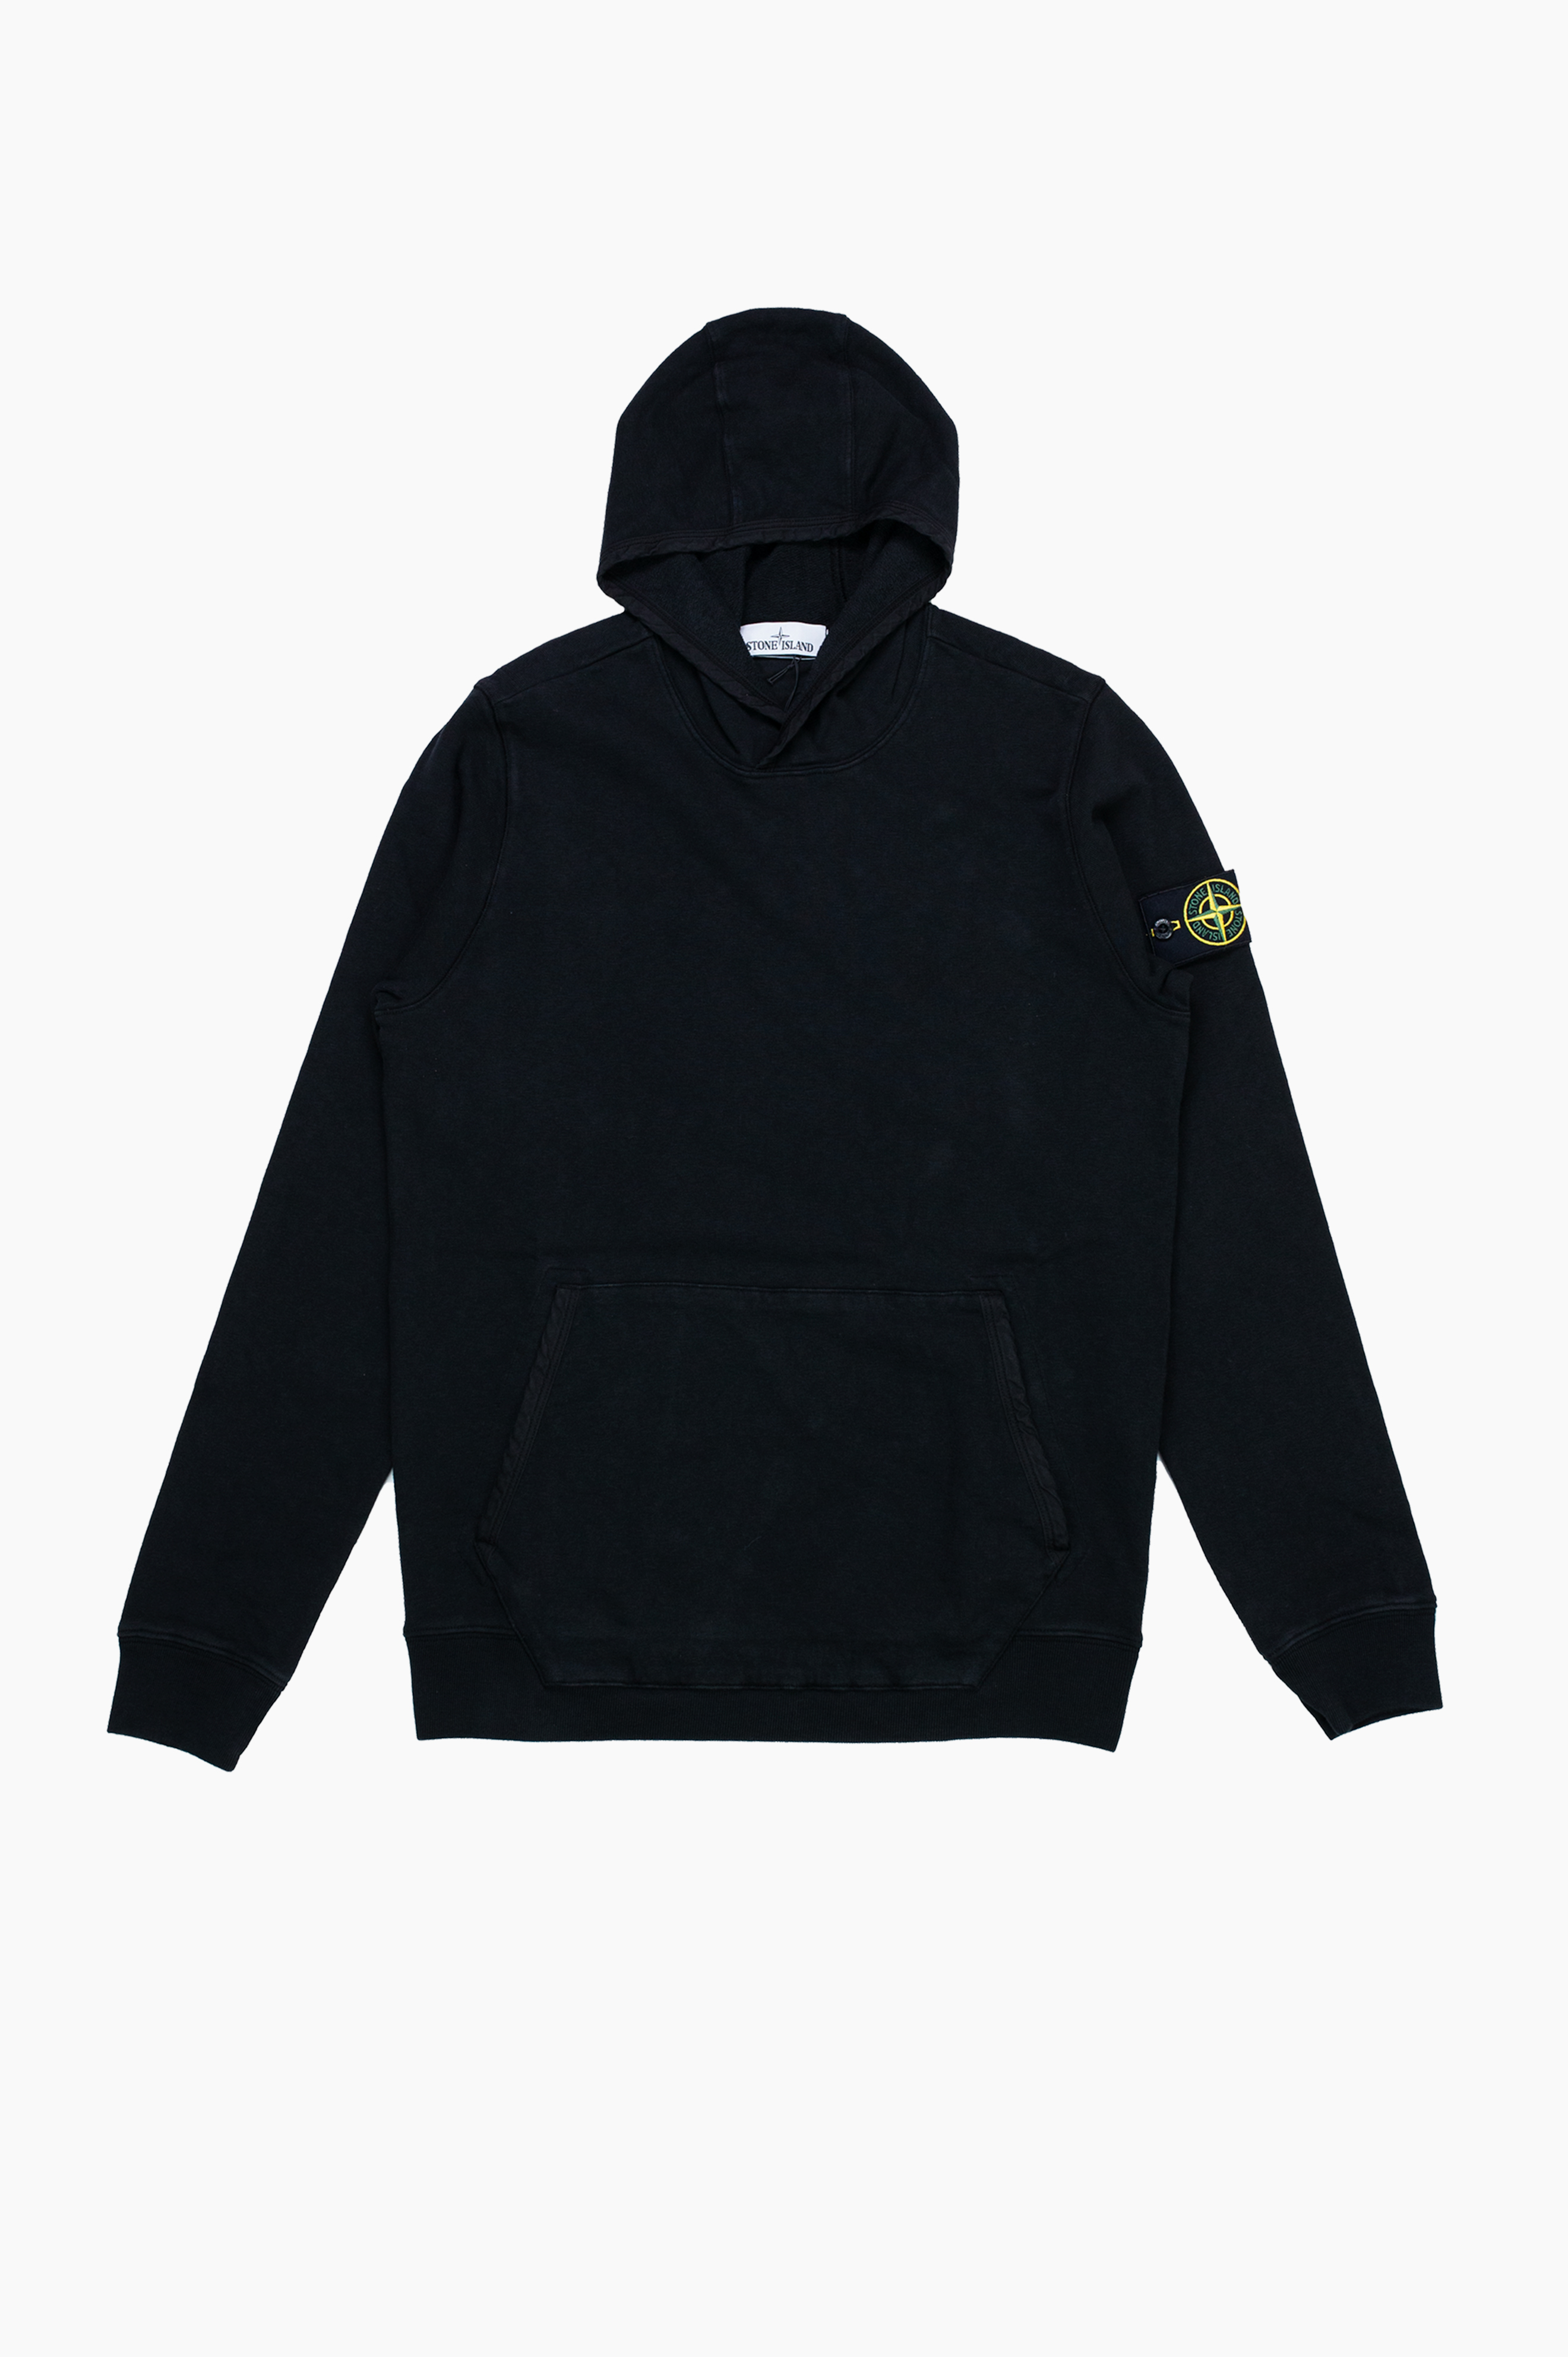 'Old' Dye Treatment Hooded Sweatshirt Black